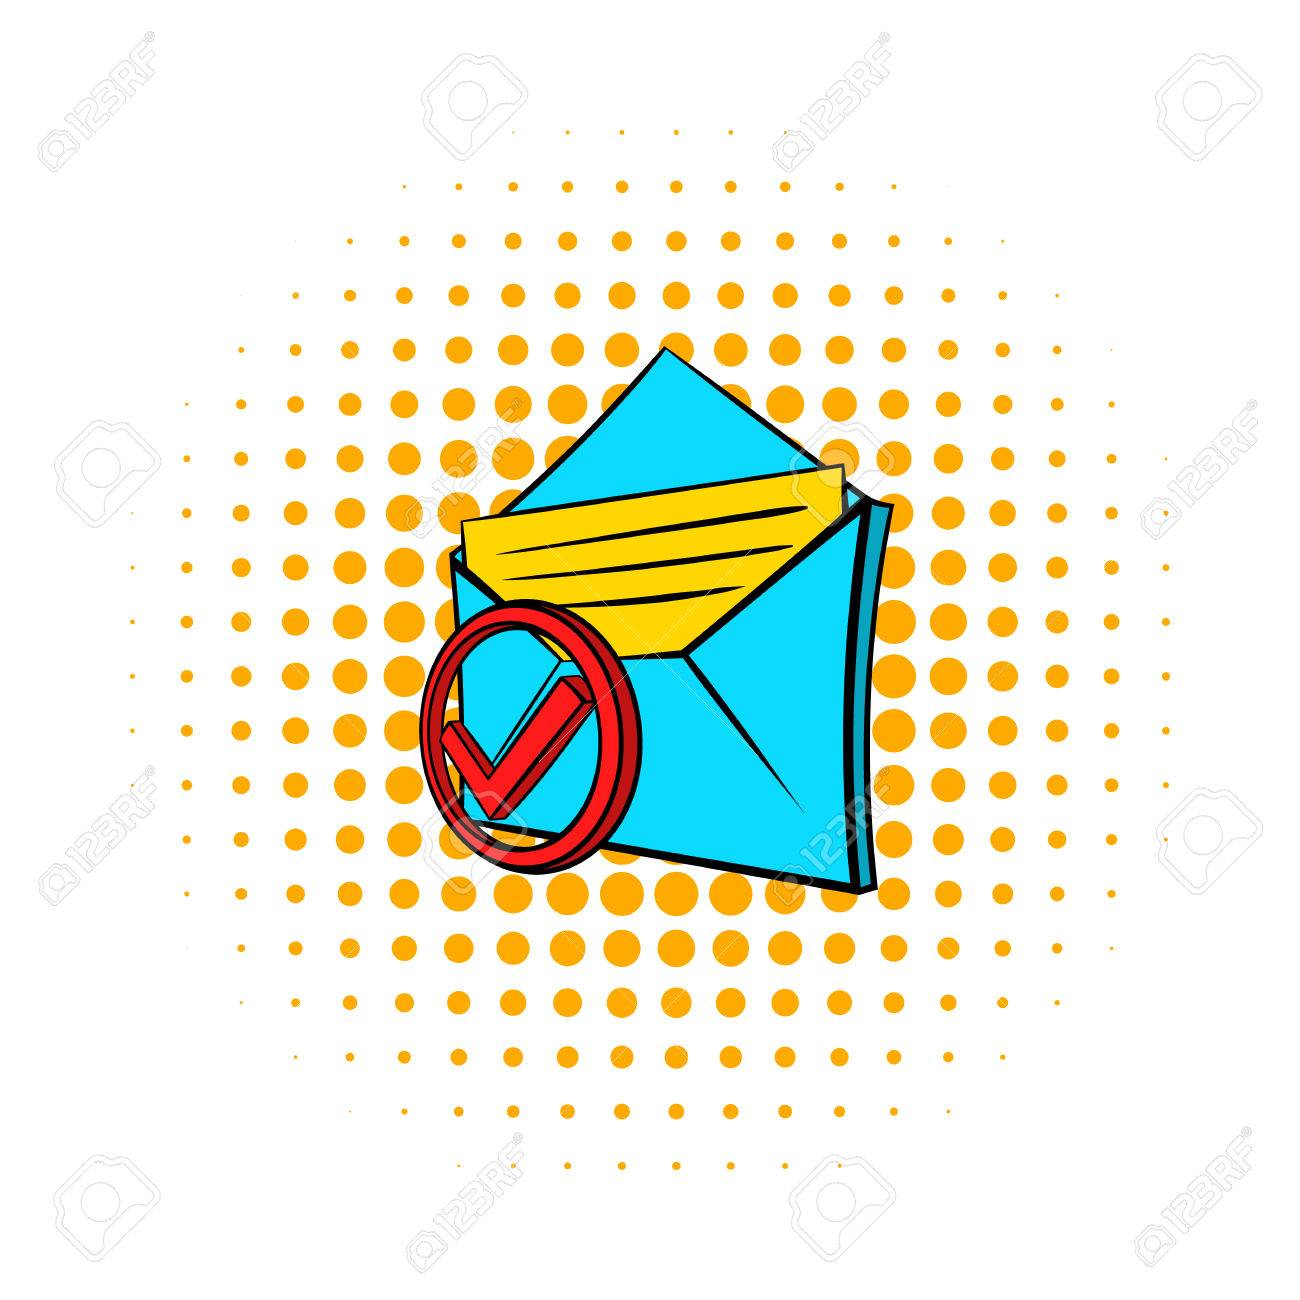 Delivered e mail icon in pop art style on dotted background delivered e mail icon in pop art style on dotted background internet and biocorpaavc